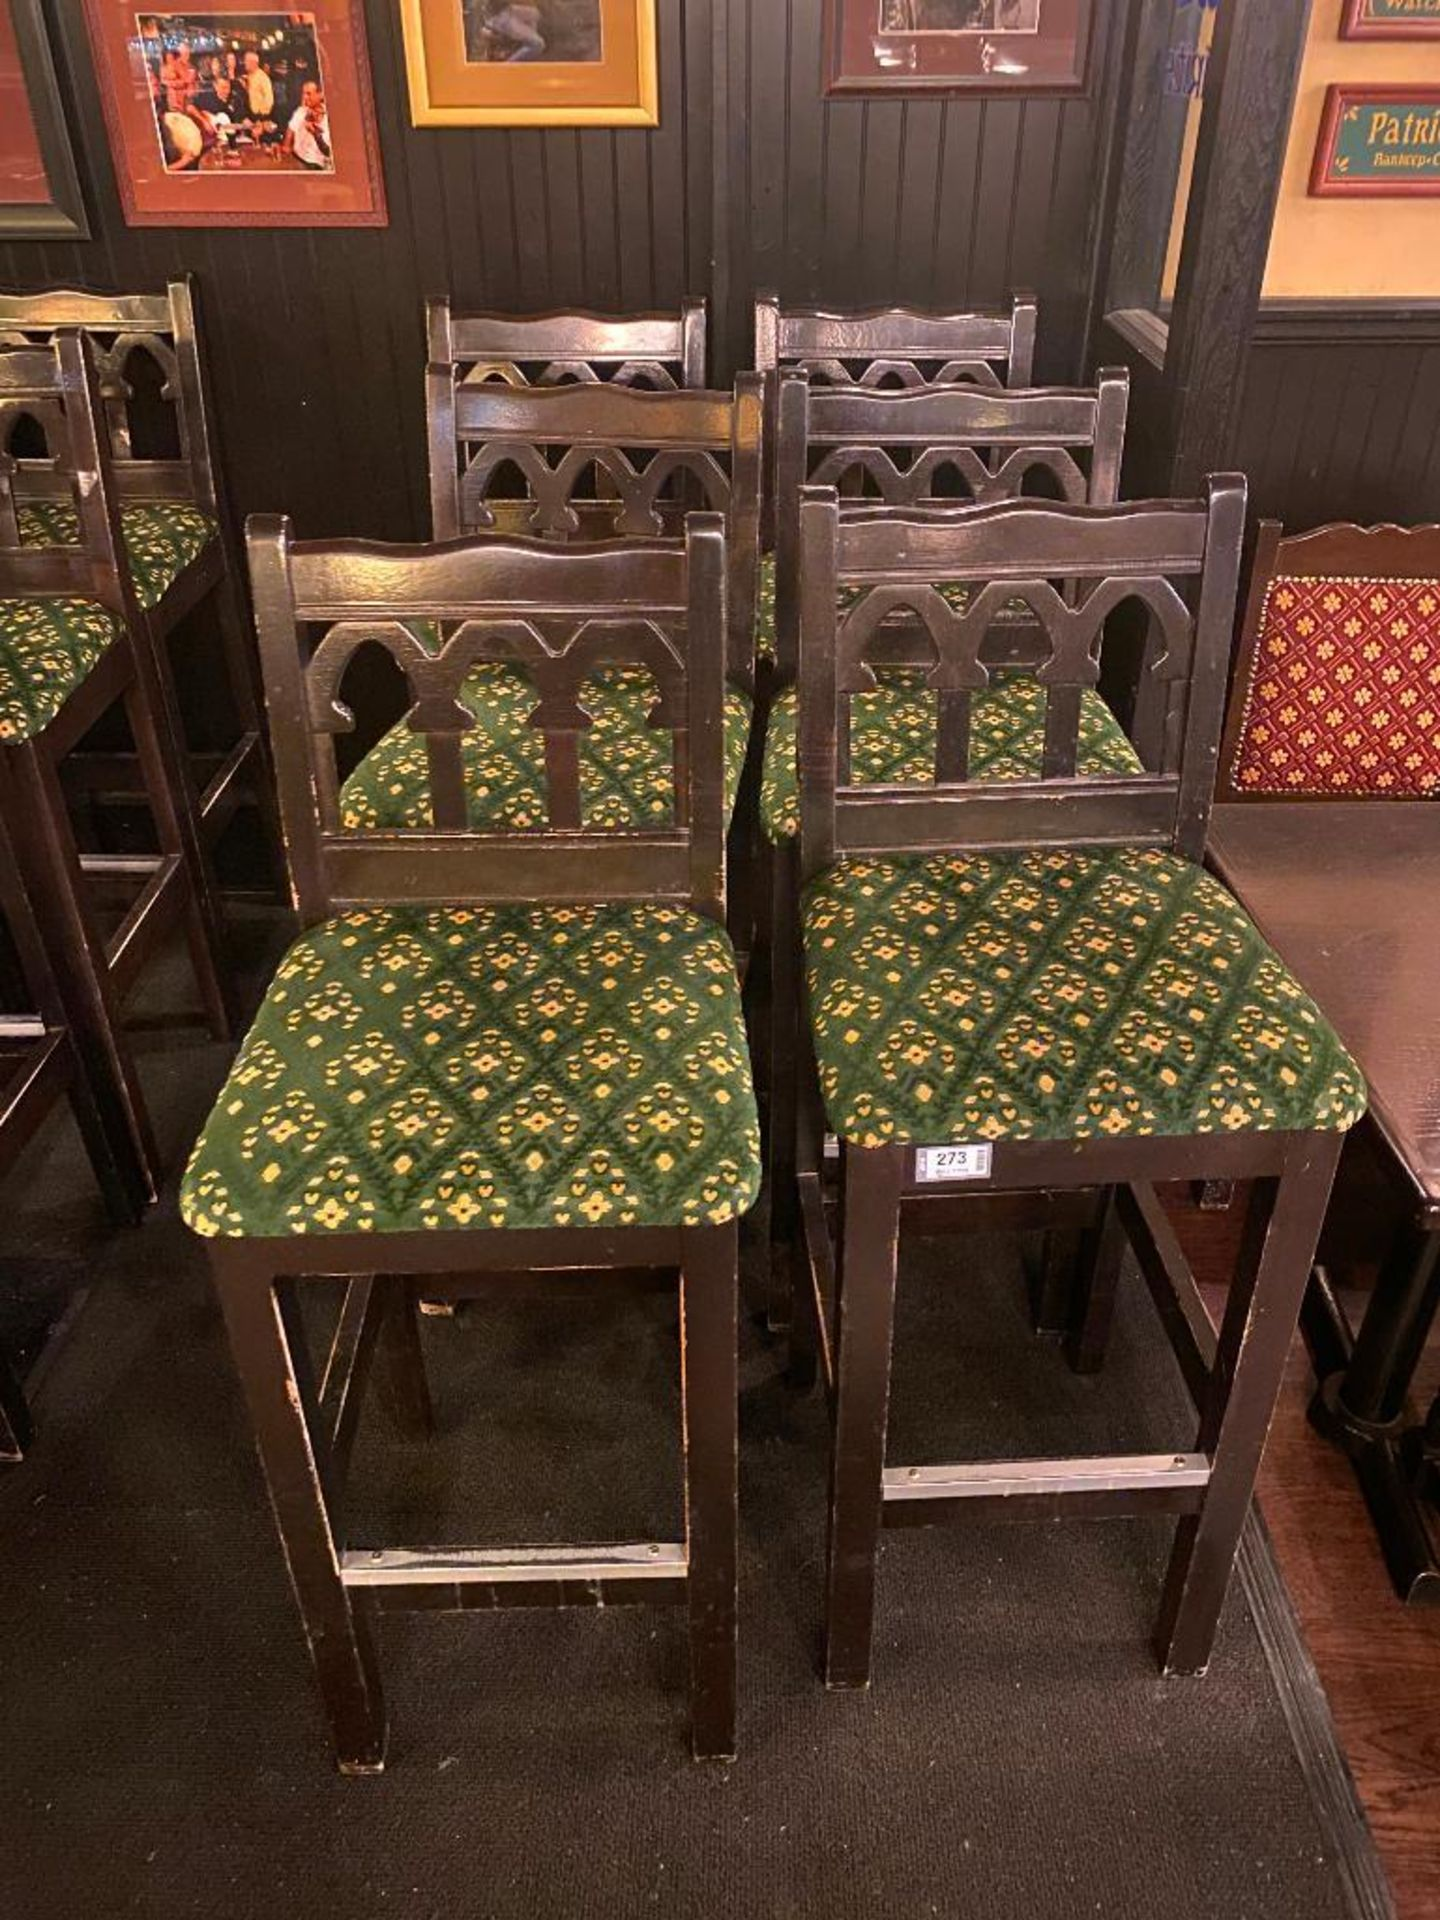 LOT OF (6) BAR STOOLS WITH BACKREST - Image 2 of 2